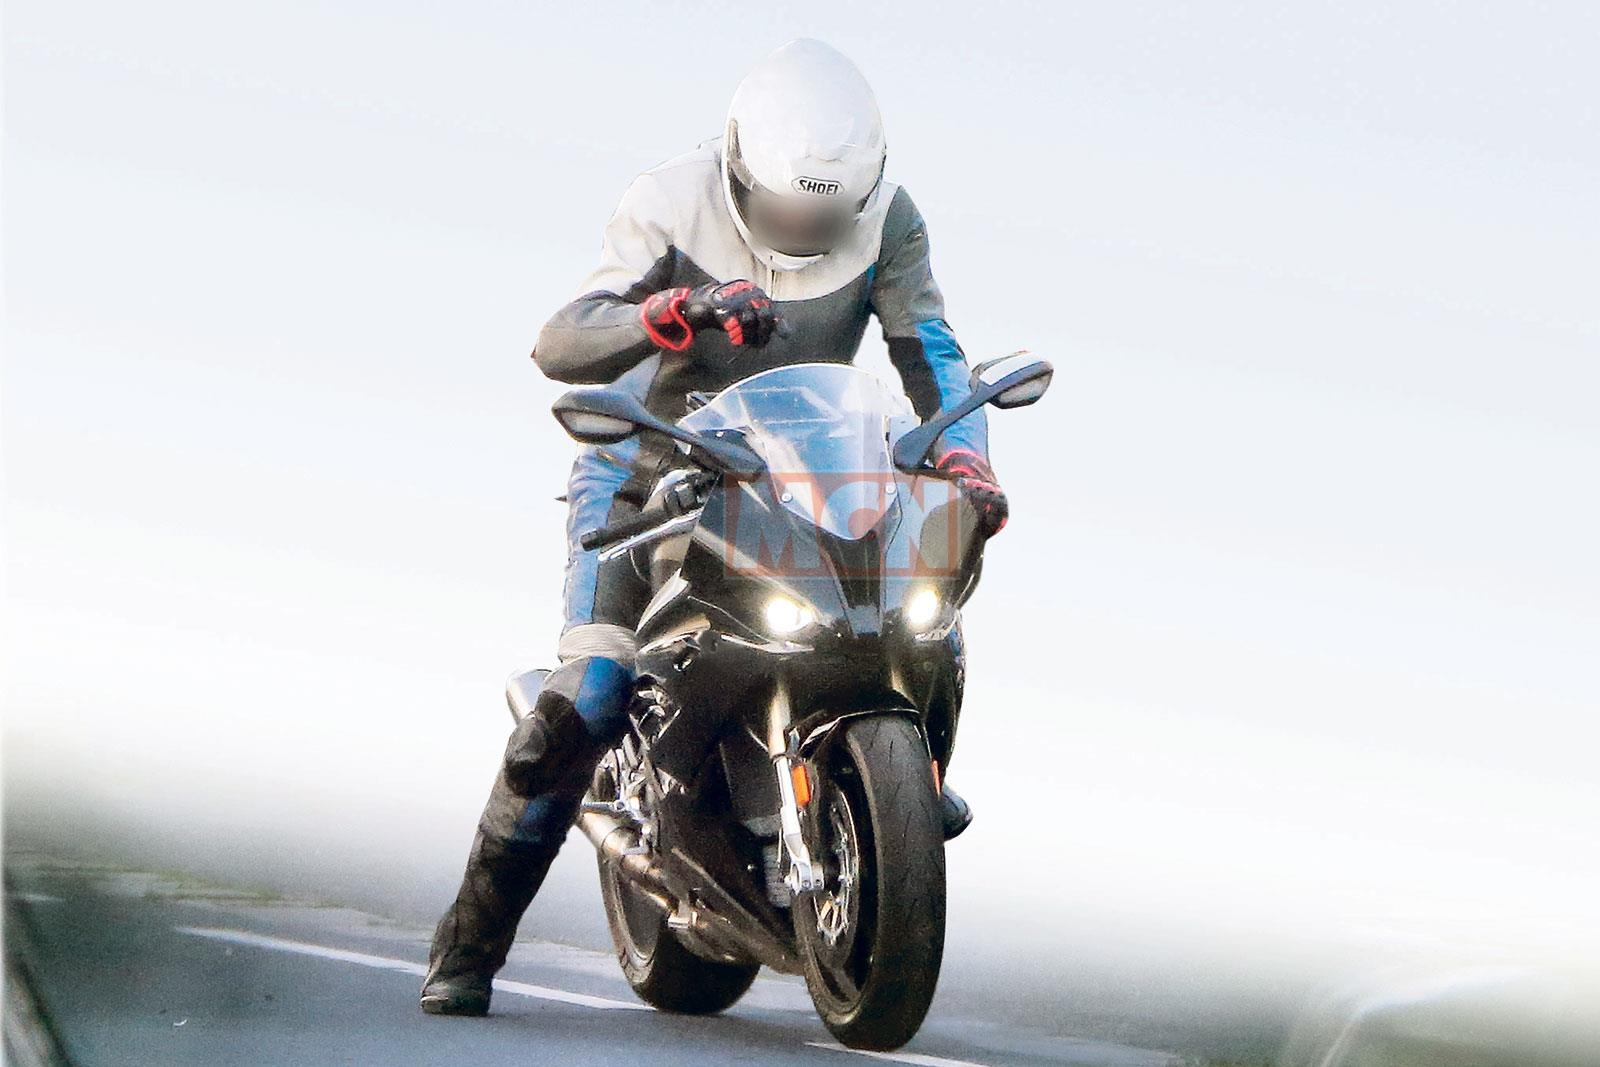 BMW's radical new S1000RR | MCN